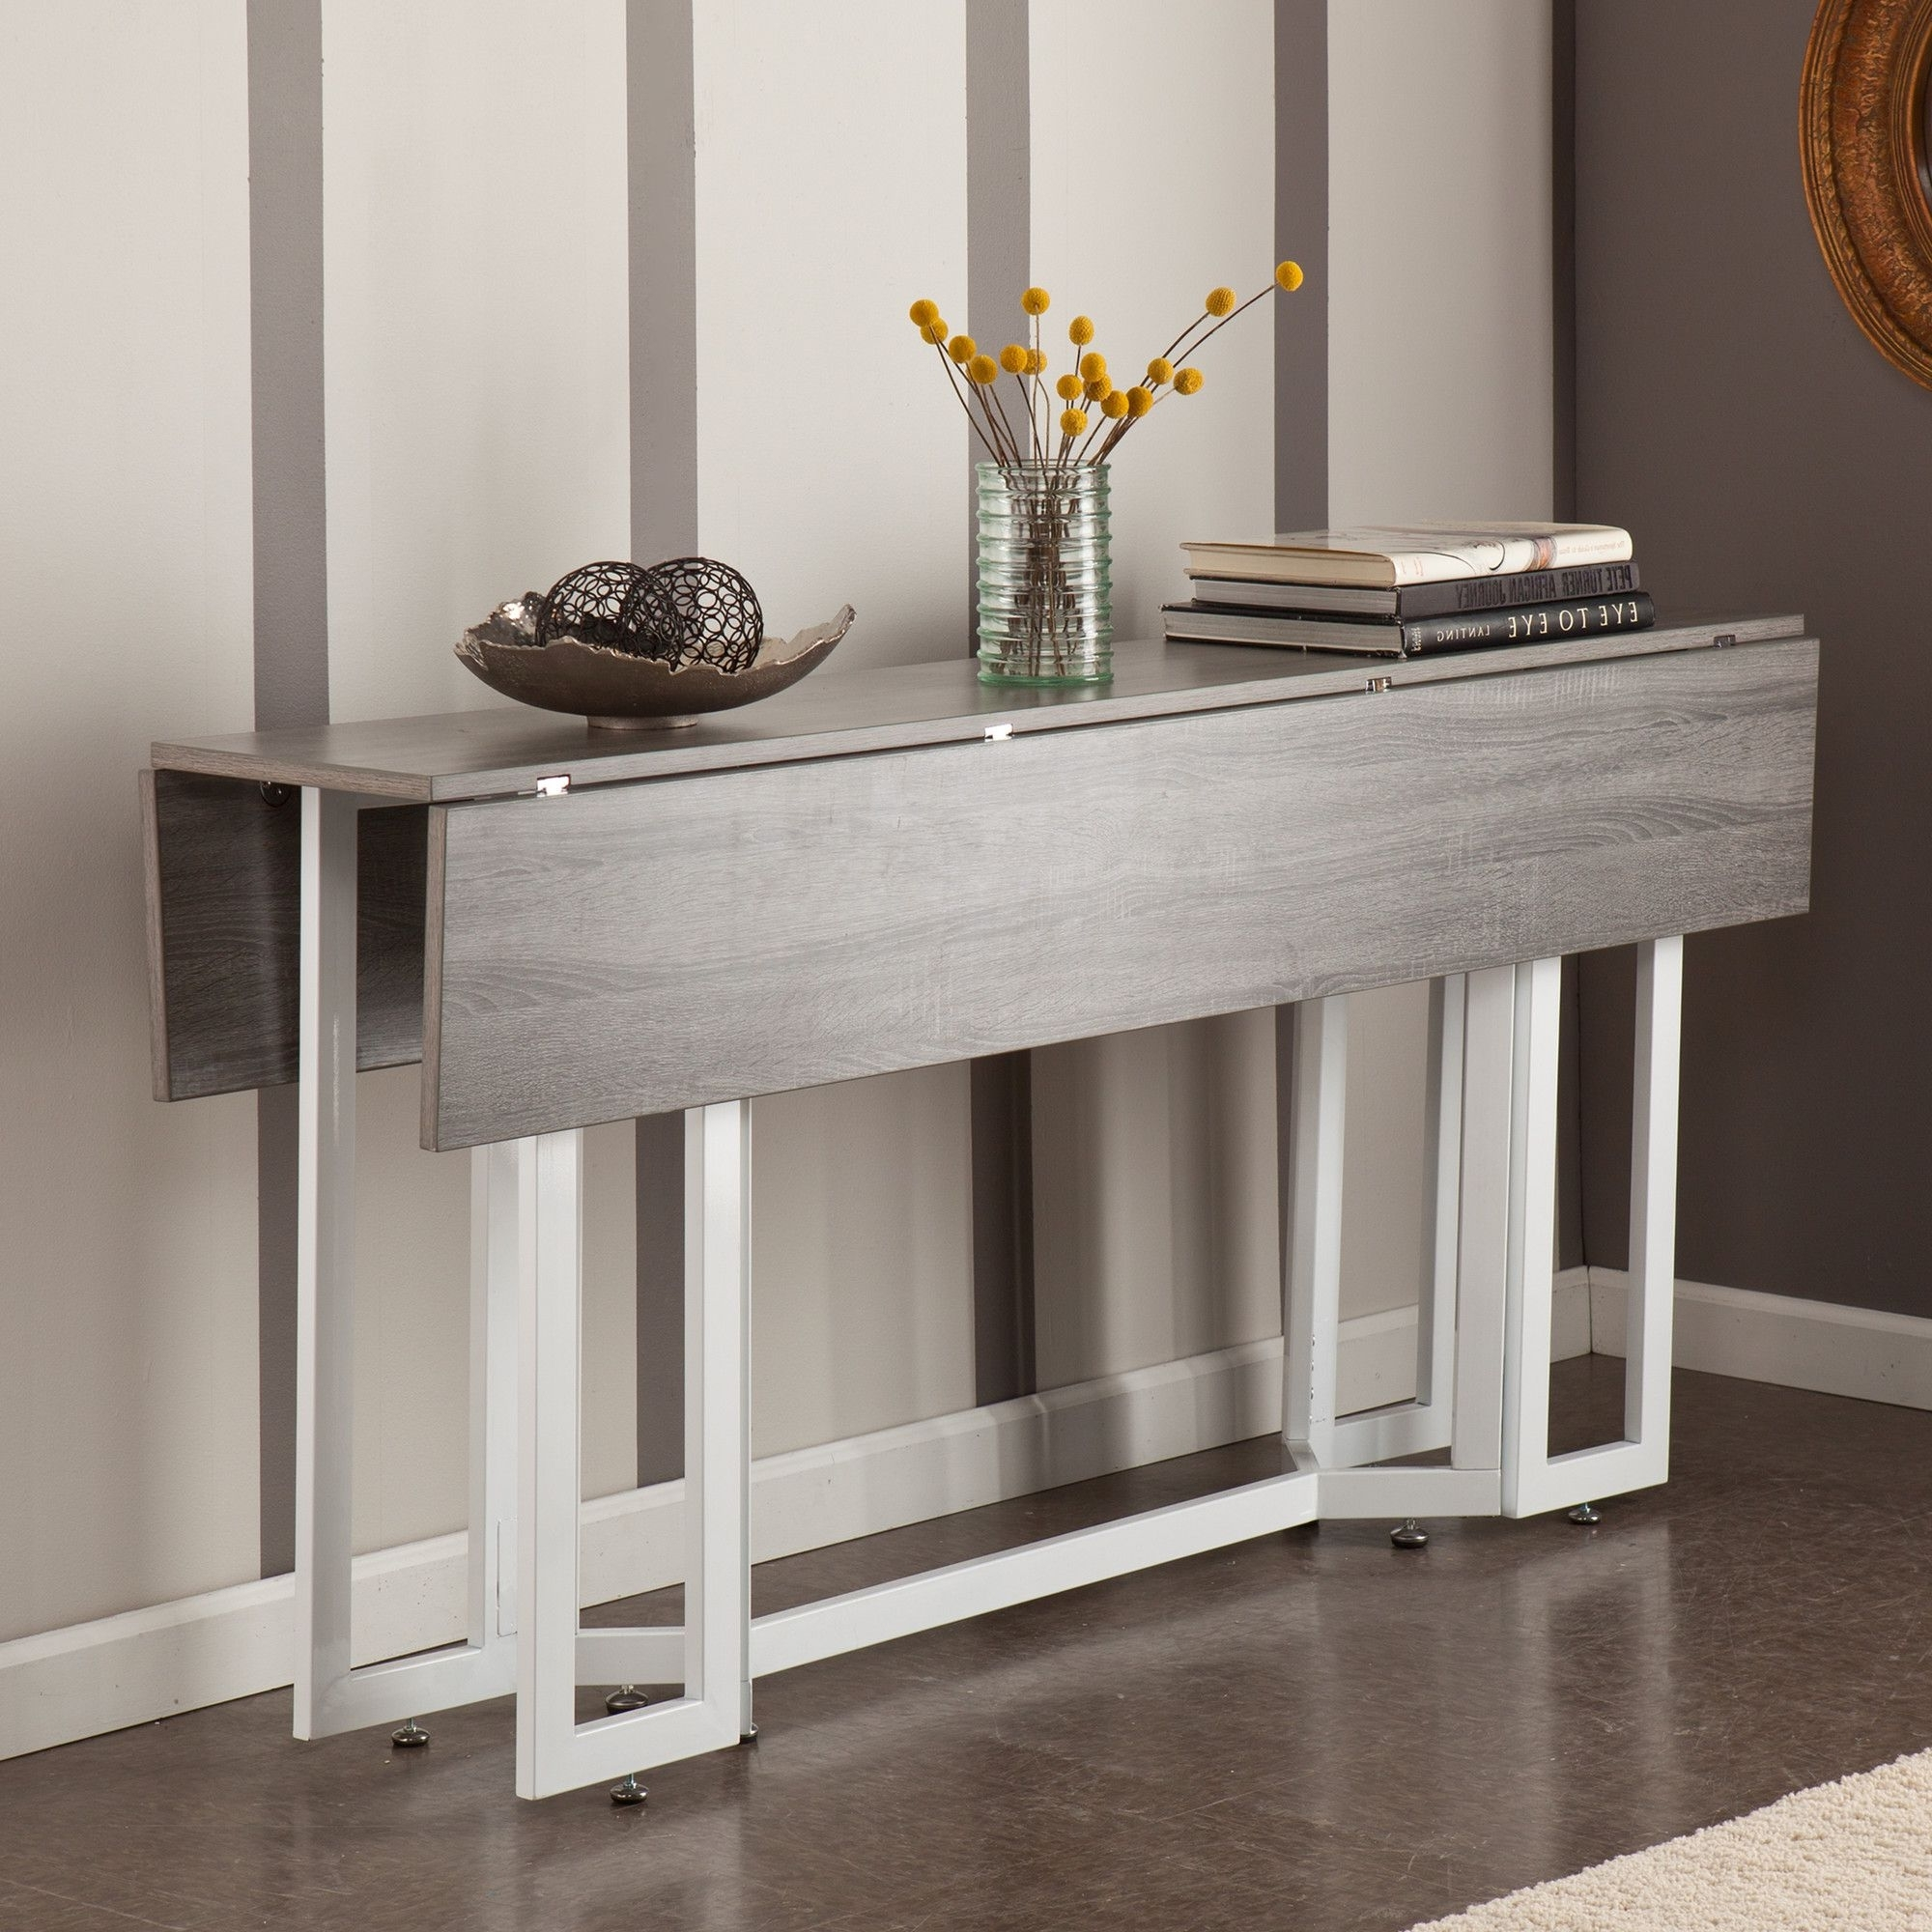 Newest Holly & Martin Driness Drop Leaf Dining / Console Table & Reviews Intended For Cheap Drop Leaf Dining Tables (View 9 of 25)